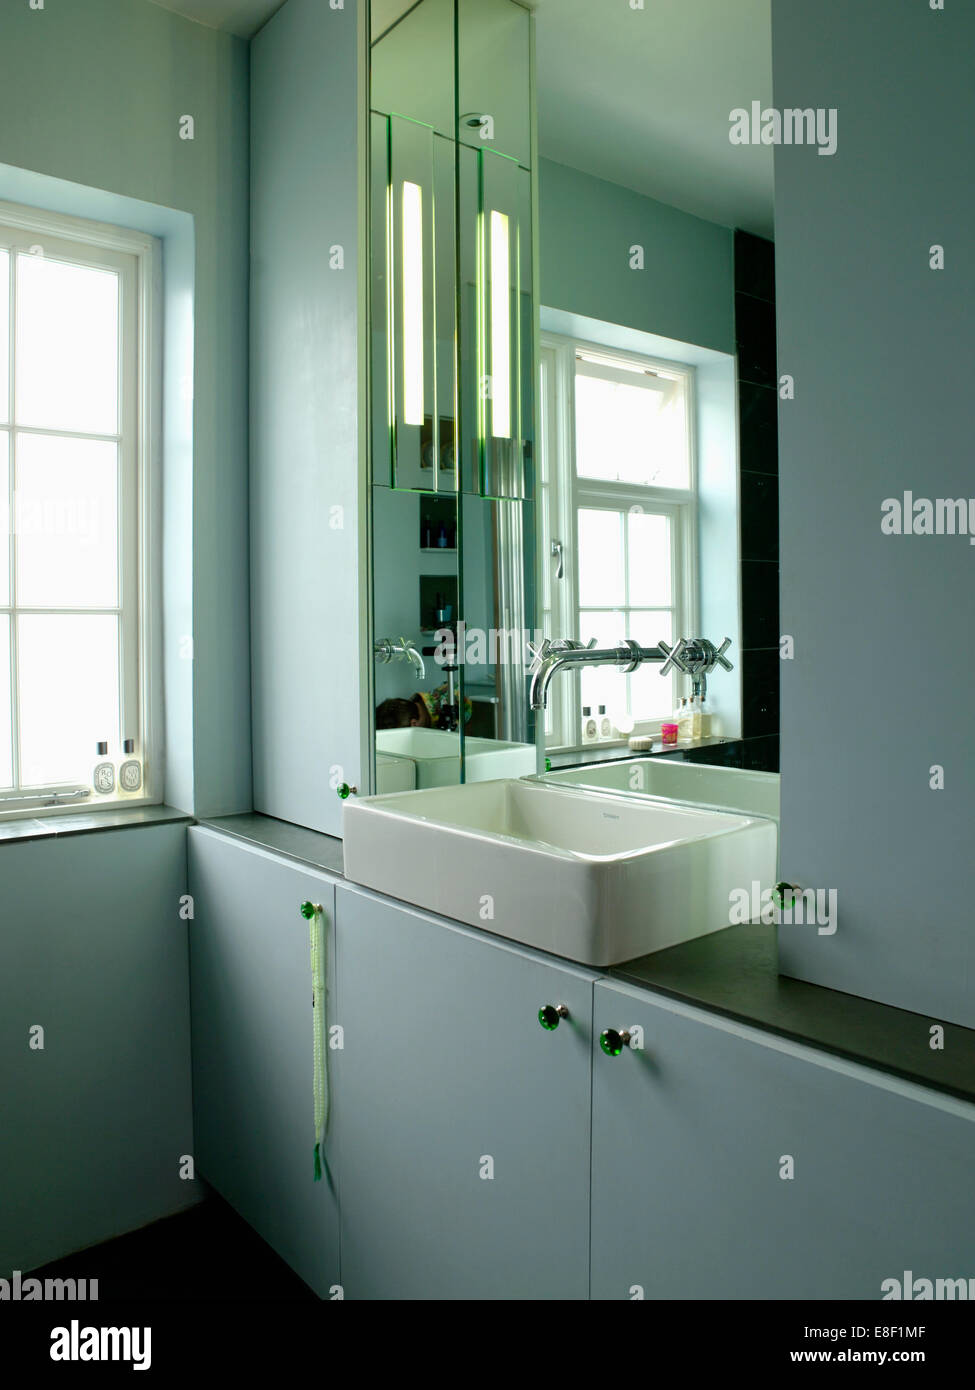 Lighting on mirror above ceramic basin on vanity unit in pale gray ...